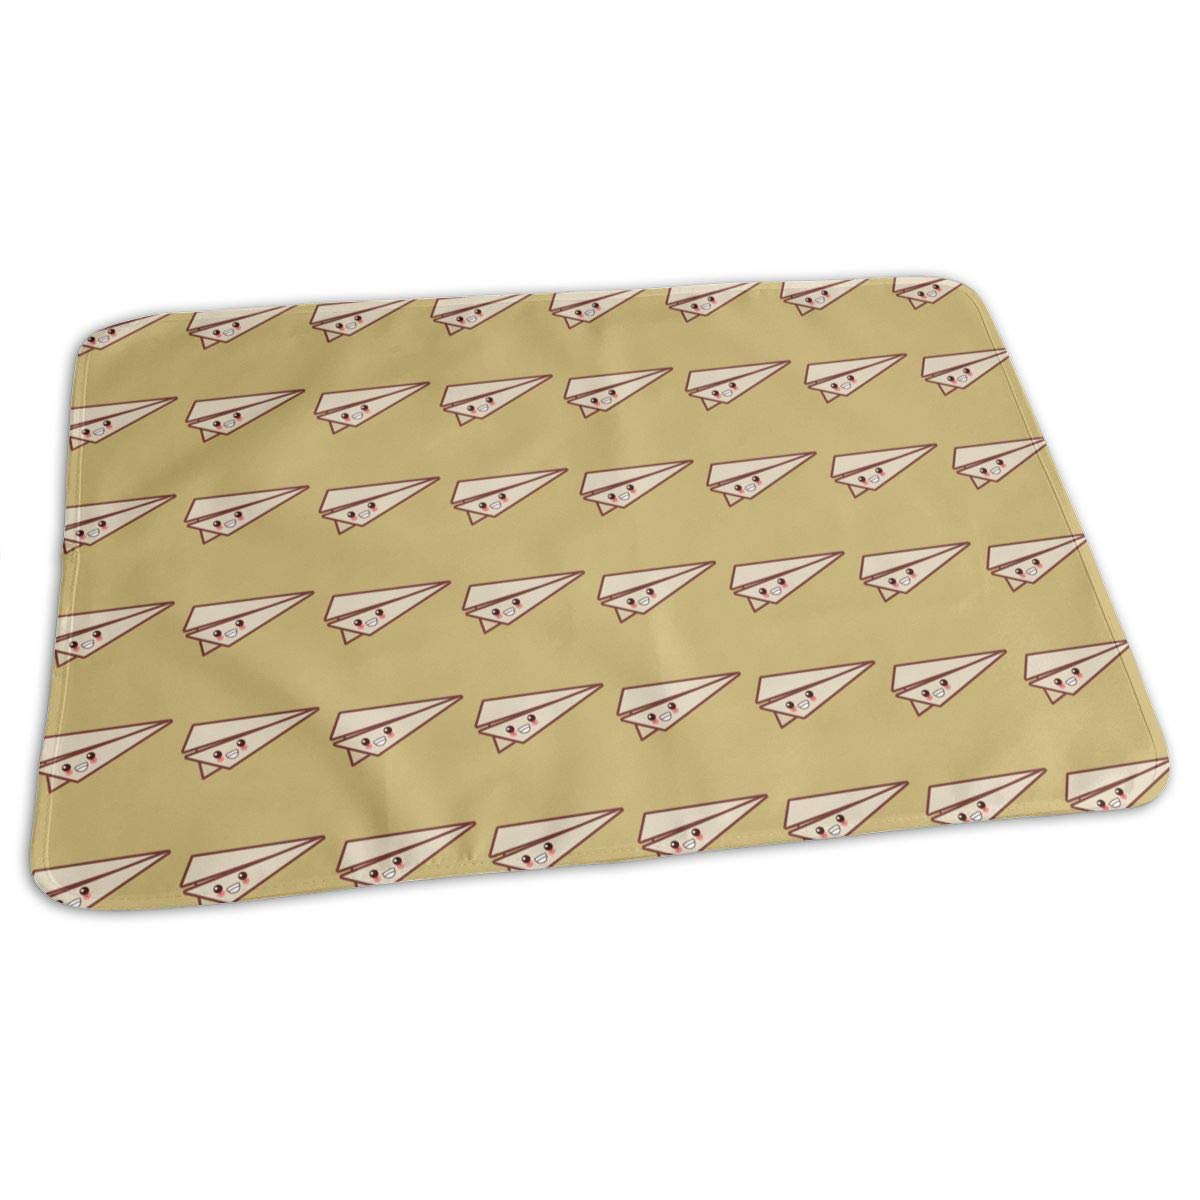 Cute Paper Plane Baby Changing Pad Waterproof Portable Changing Pad Home Travel 27.5¡±x19.7¡±